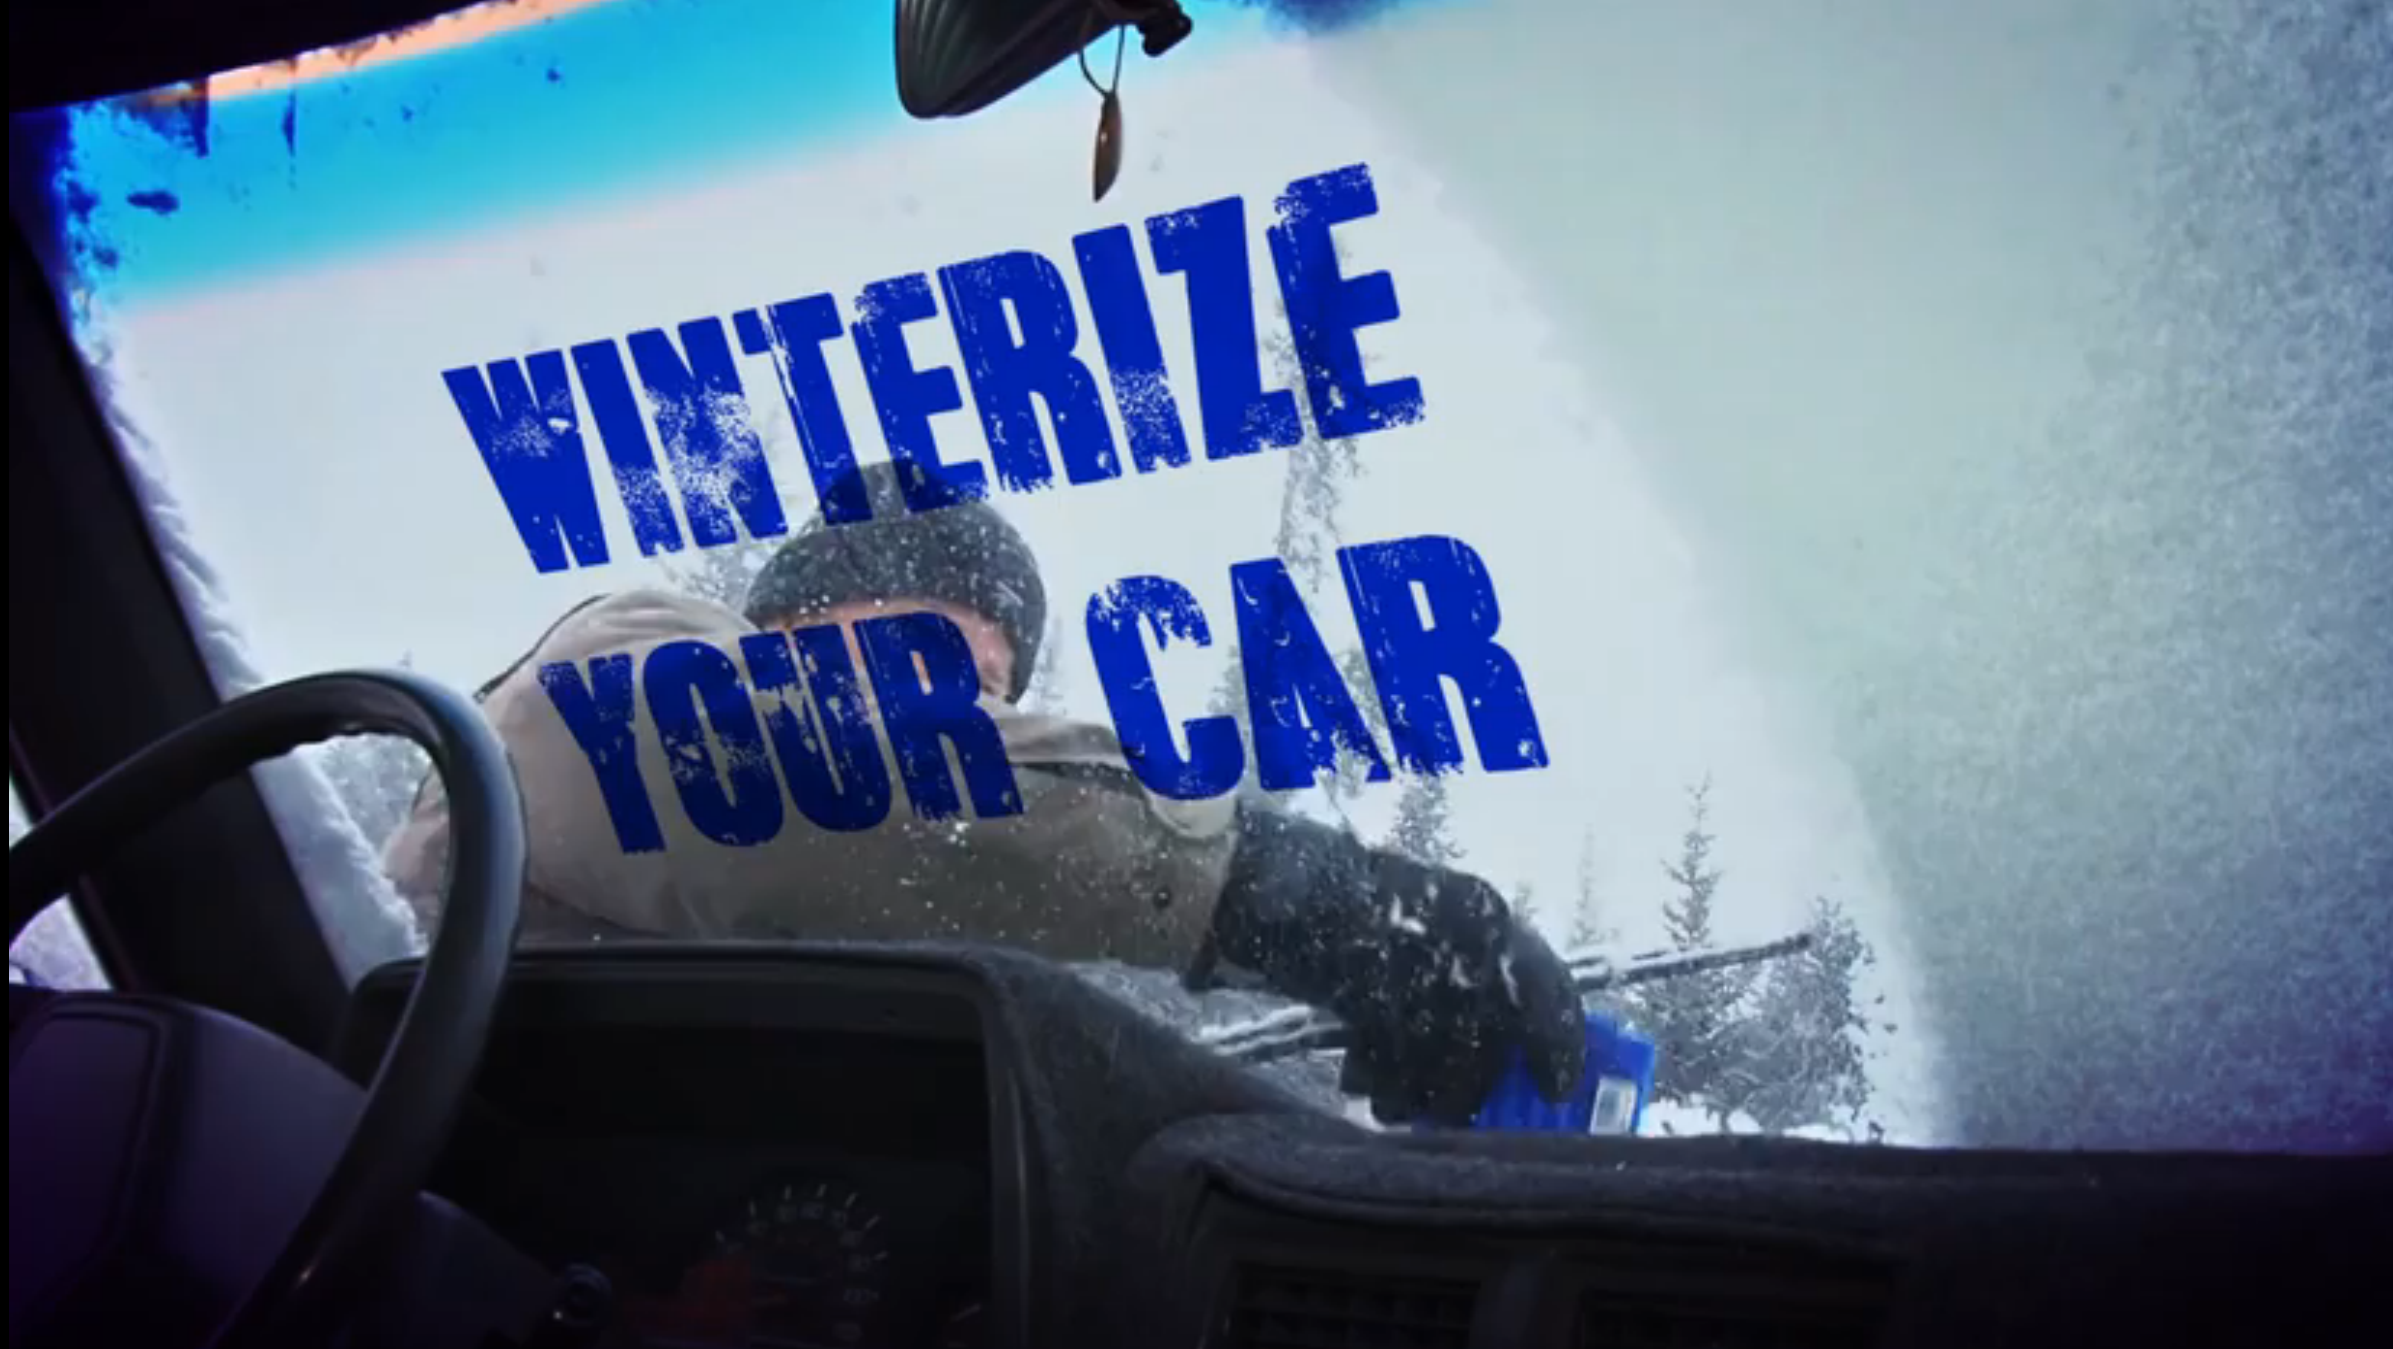 winterize Your car written on a snowy windshield